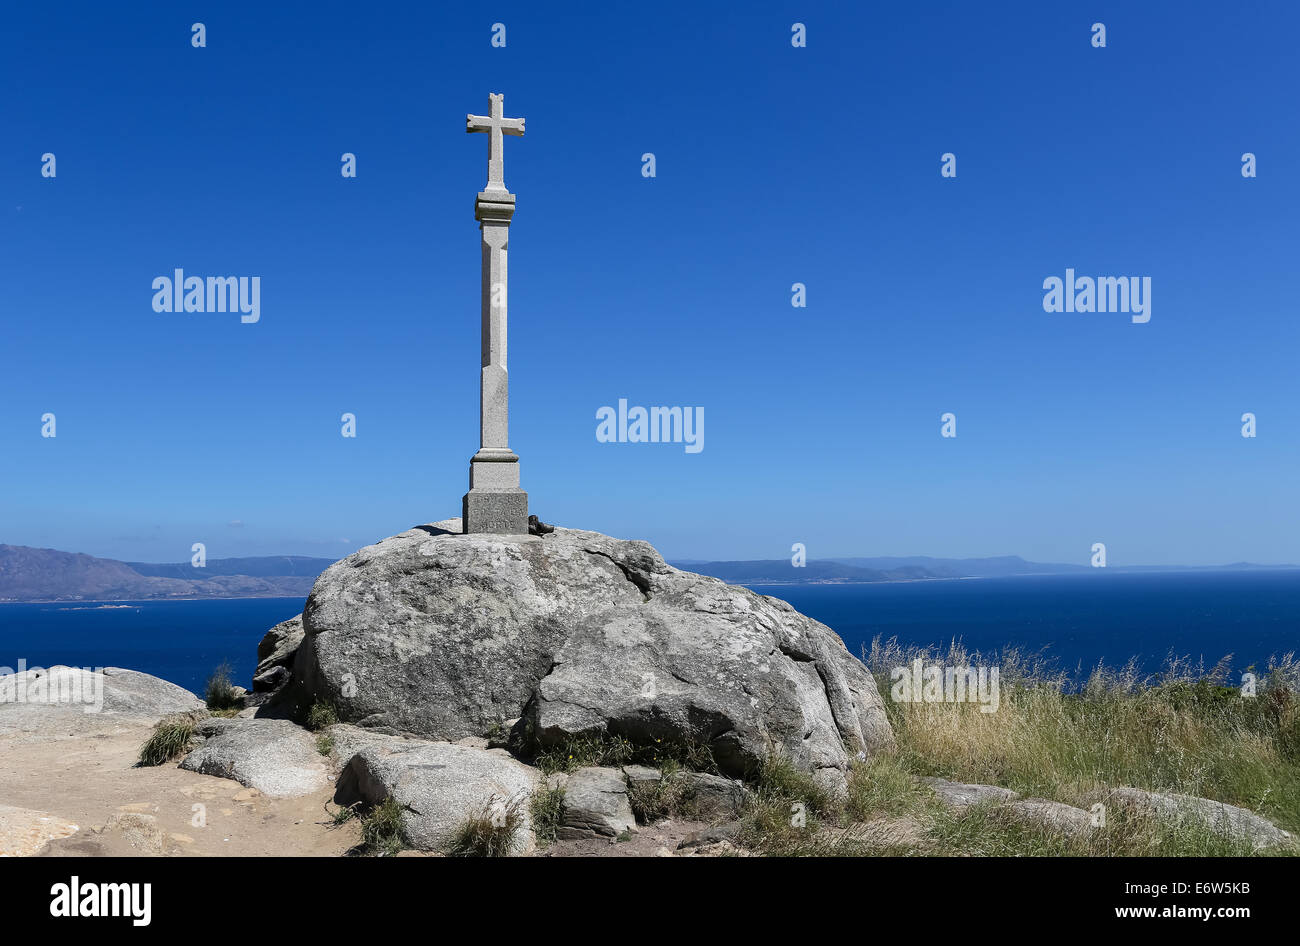 Stone cross at the lighthouse of Cape Finisterre, the final destination for many pilgrims on the Way of St James - Stock Image